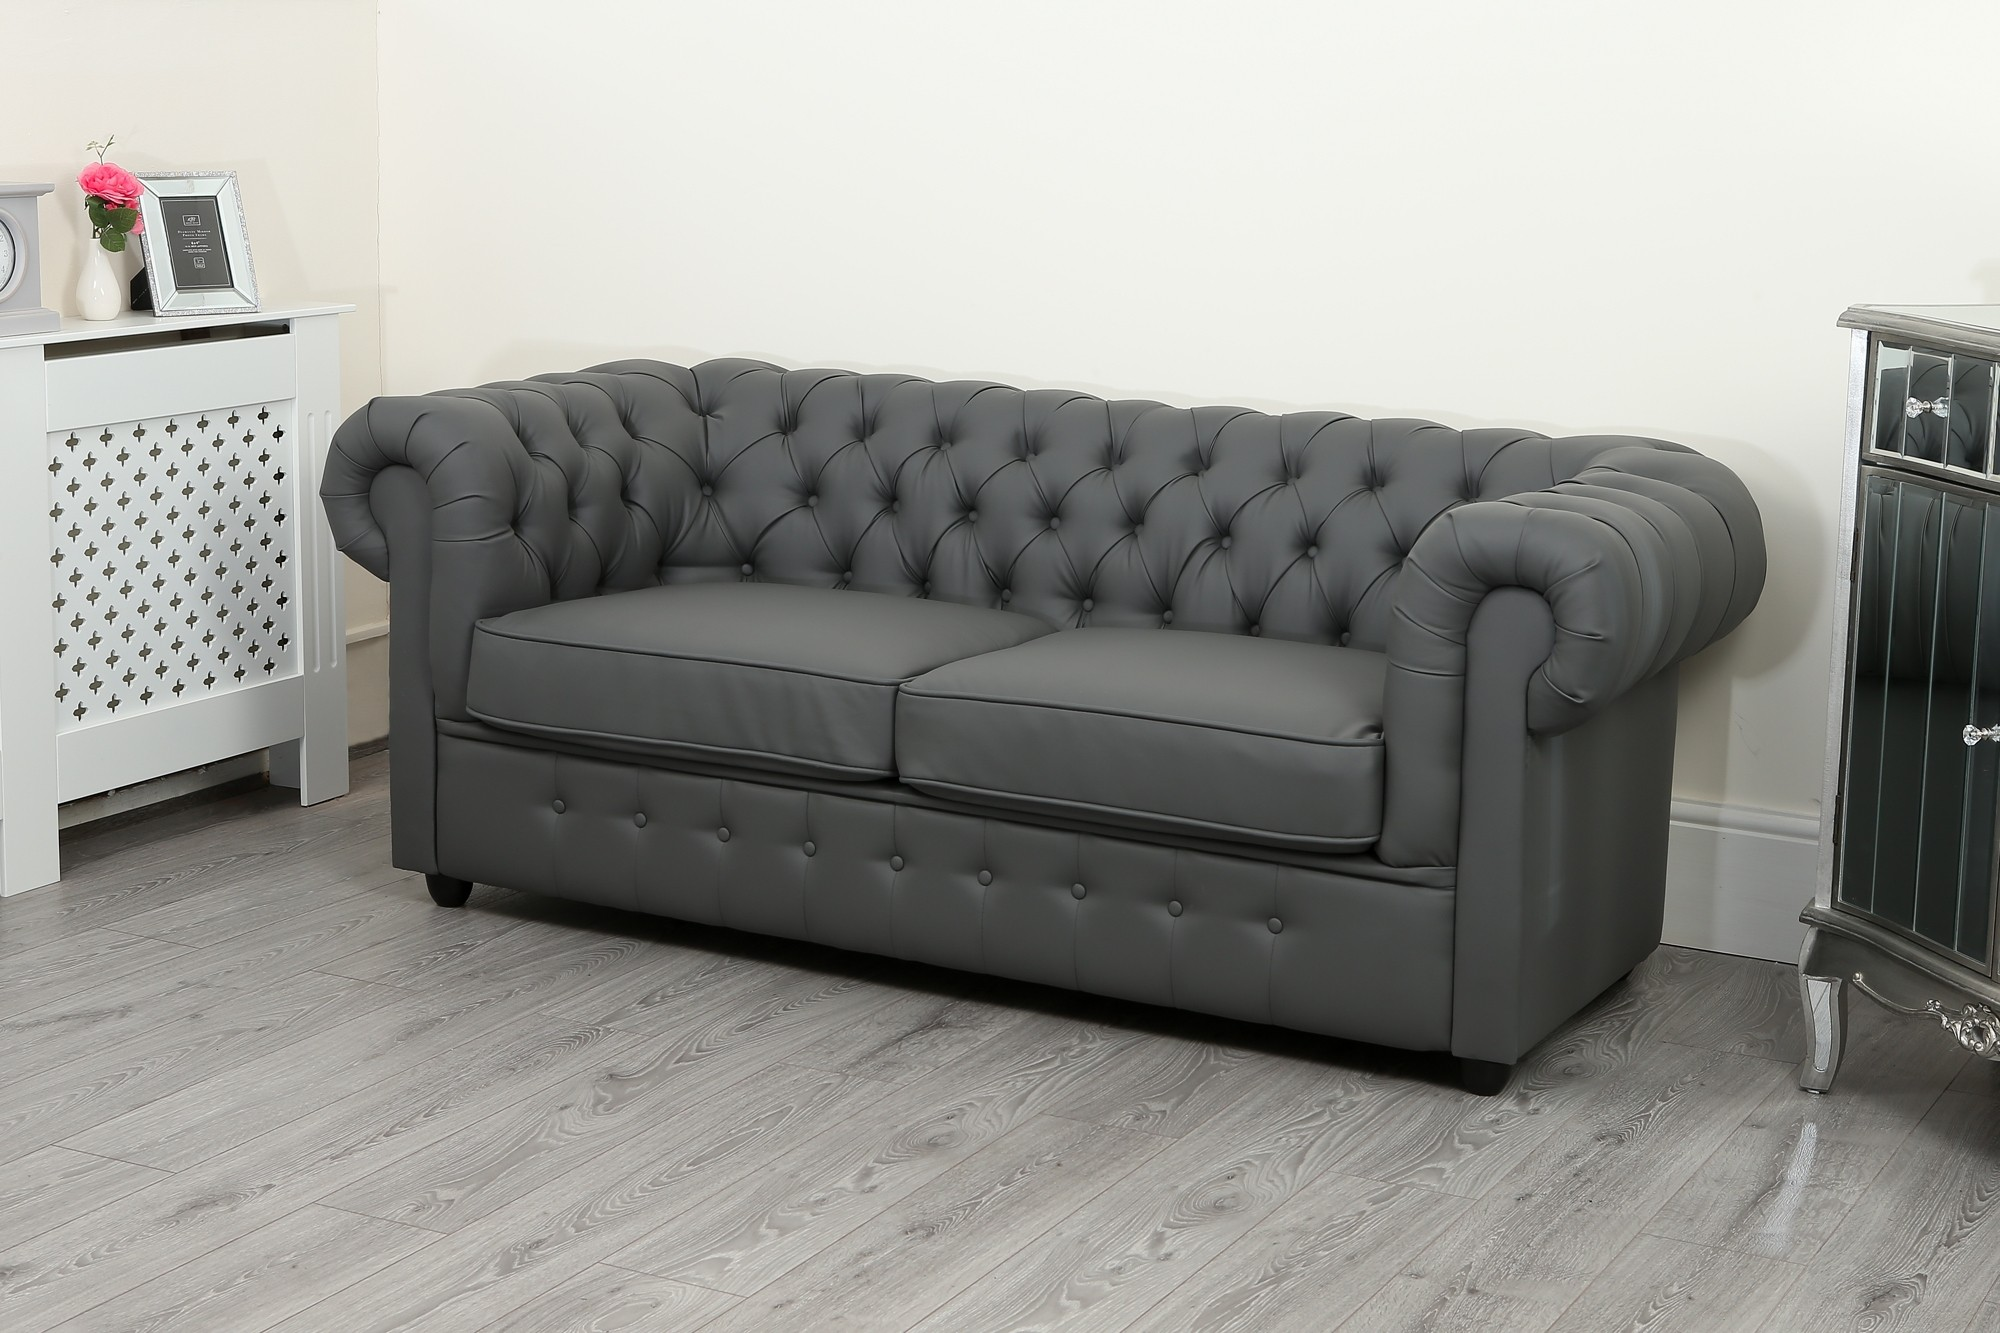 Empire Grey Faux Leather Chesterfield Sofa Suite Abreo